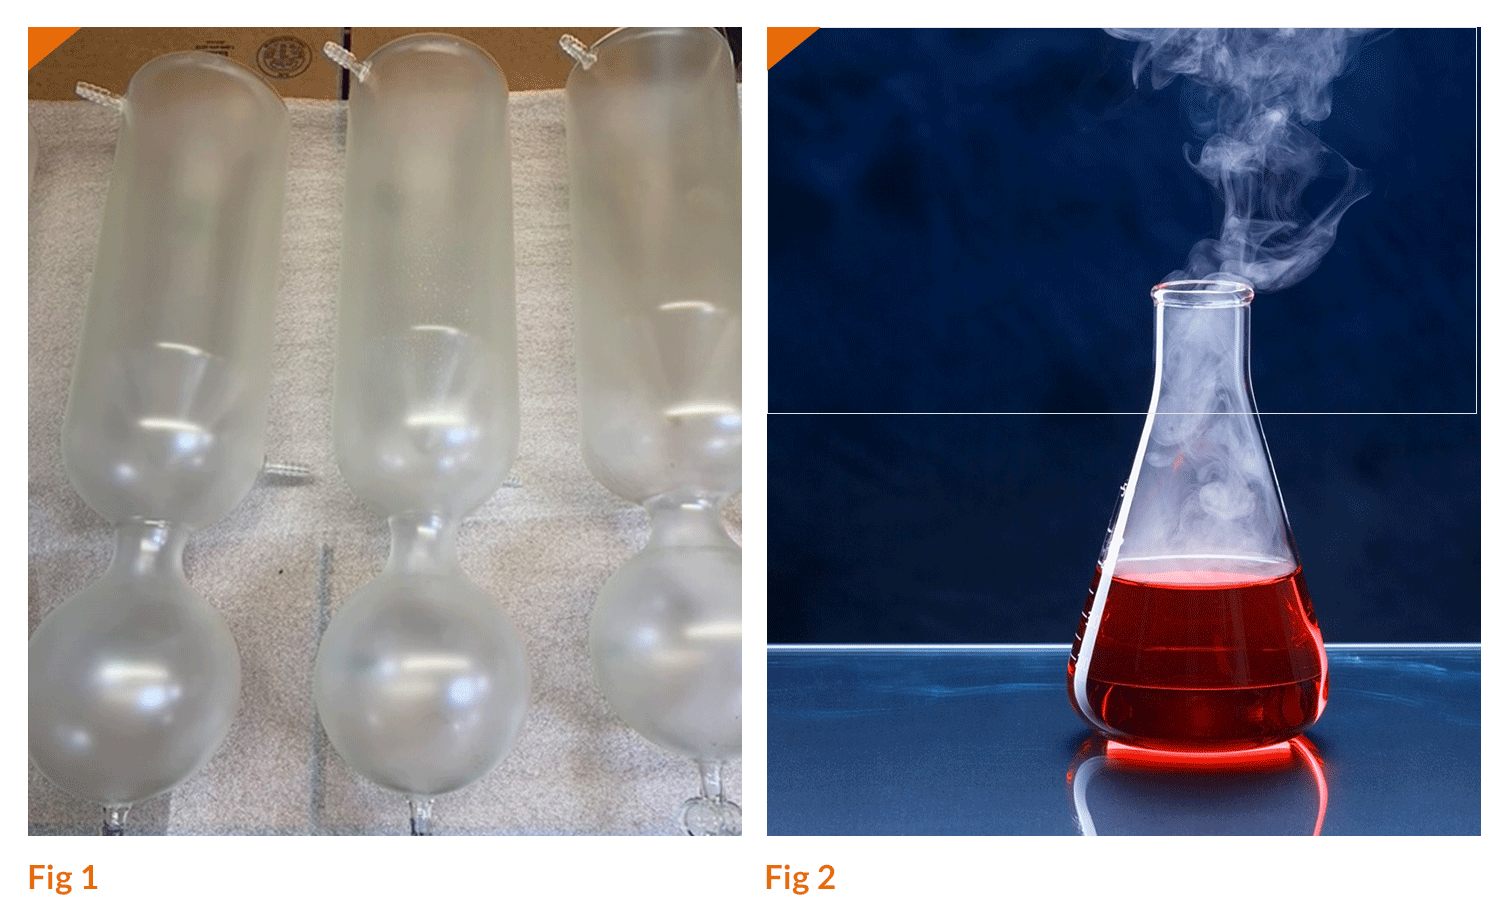 Laboratory glassware protected with Nycote's clear nylon epoxy polymer coating.